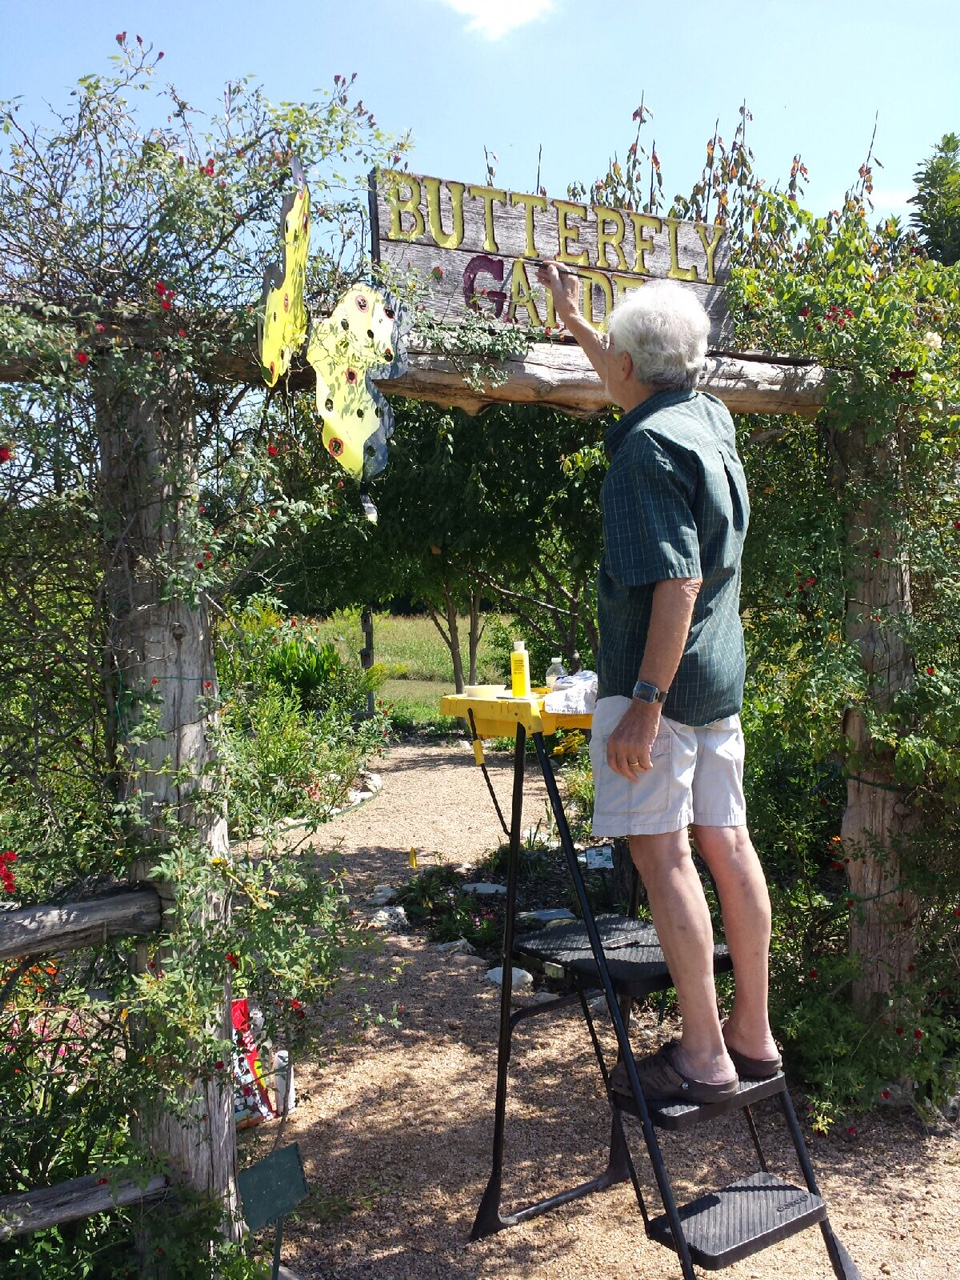 We certainly appreciate ALL of our volunteers! Axel Baehren is one of our garden volunteer gems. Thank you so much for your time and expertise, Axel!